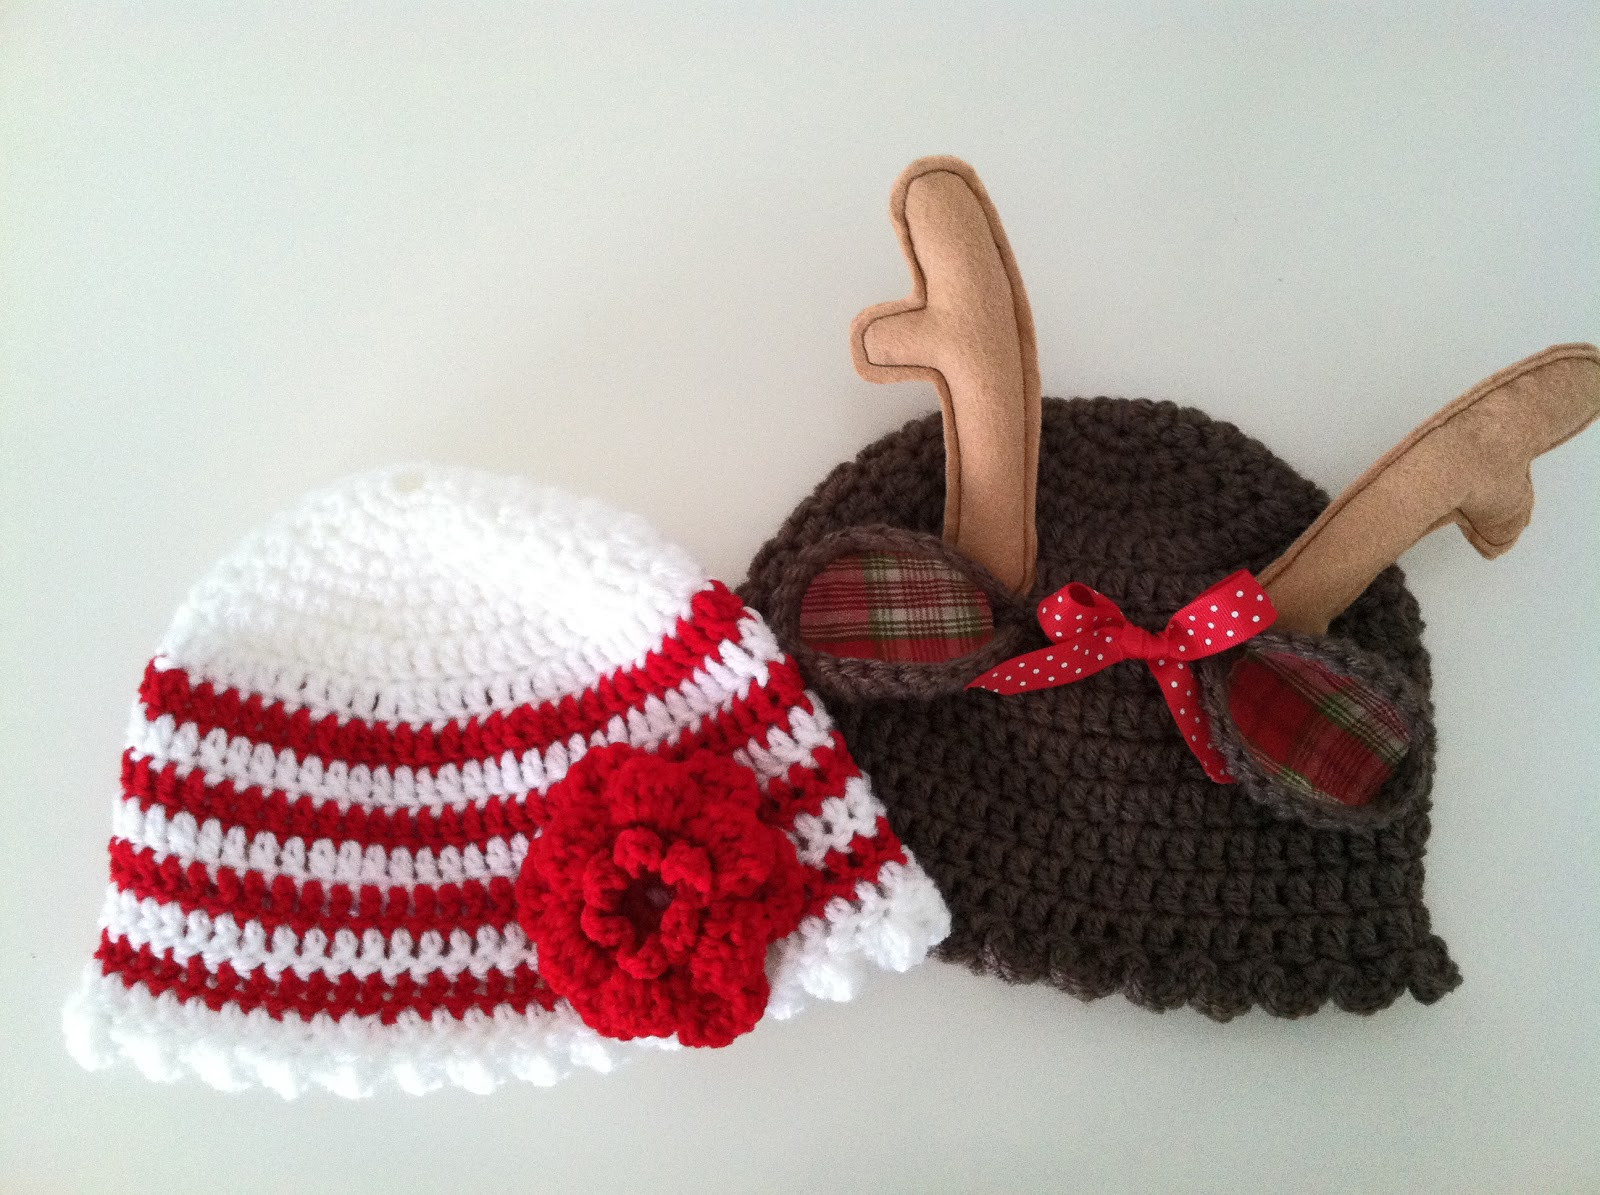 Awesome My Cotton Creations Crochet Christmas Hats Crochet Christmas Hats Of Beautiful 46 Images Crochet Christmas Hats